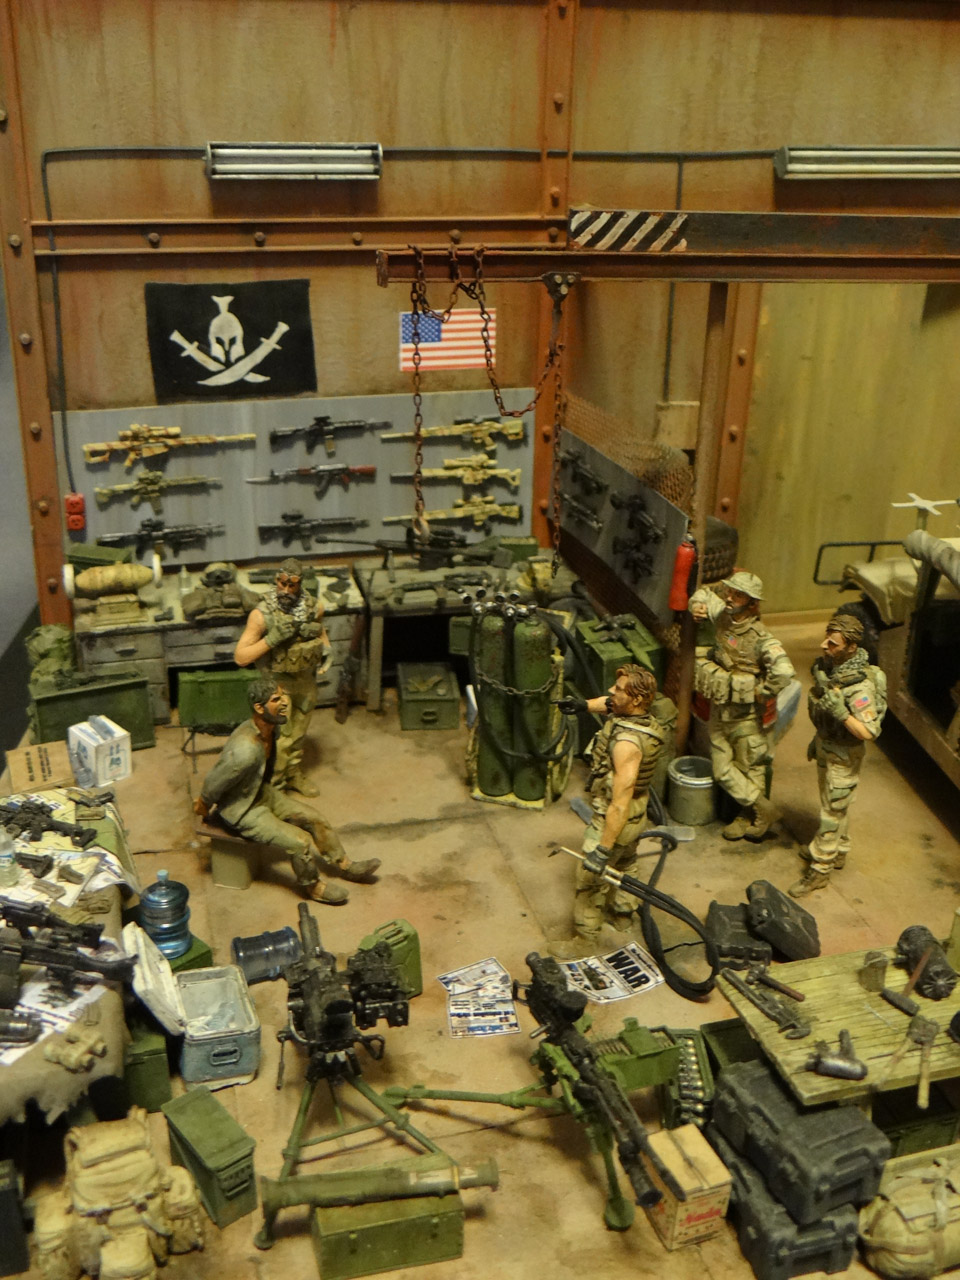 Dioramas and Vignettes: Enforcement to democracy, photo #4